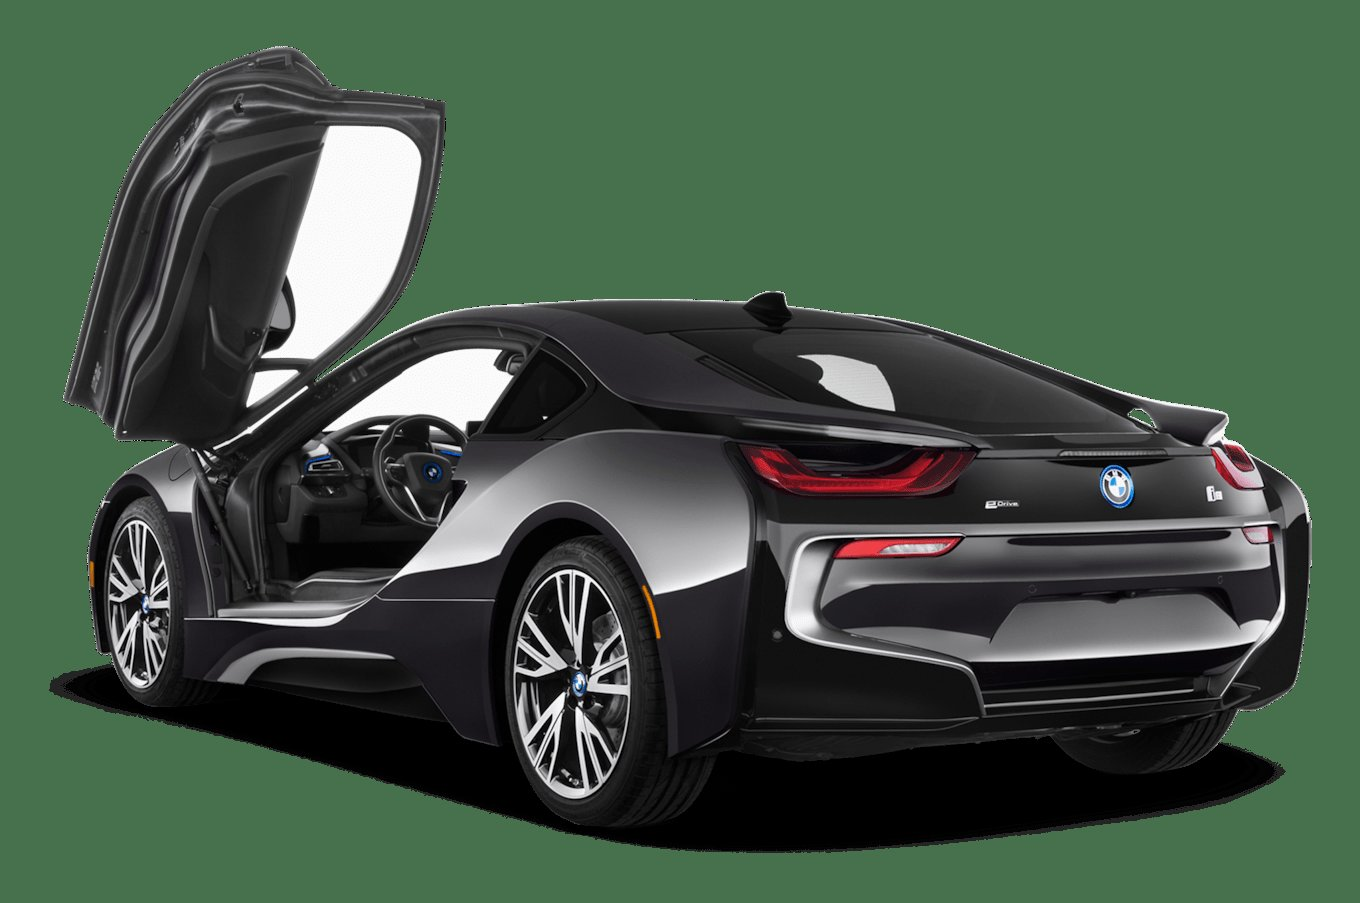 Latest 2015 Bmw I8 Reviews Research I8 Prices Specs Motortrend Free Download